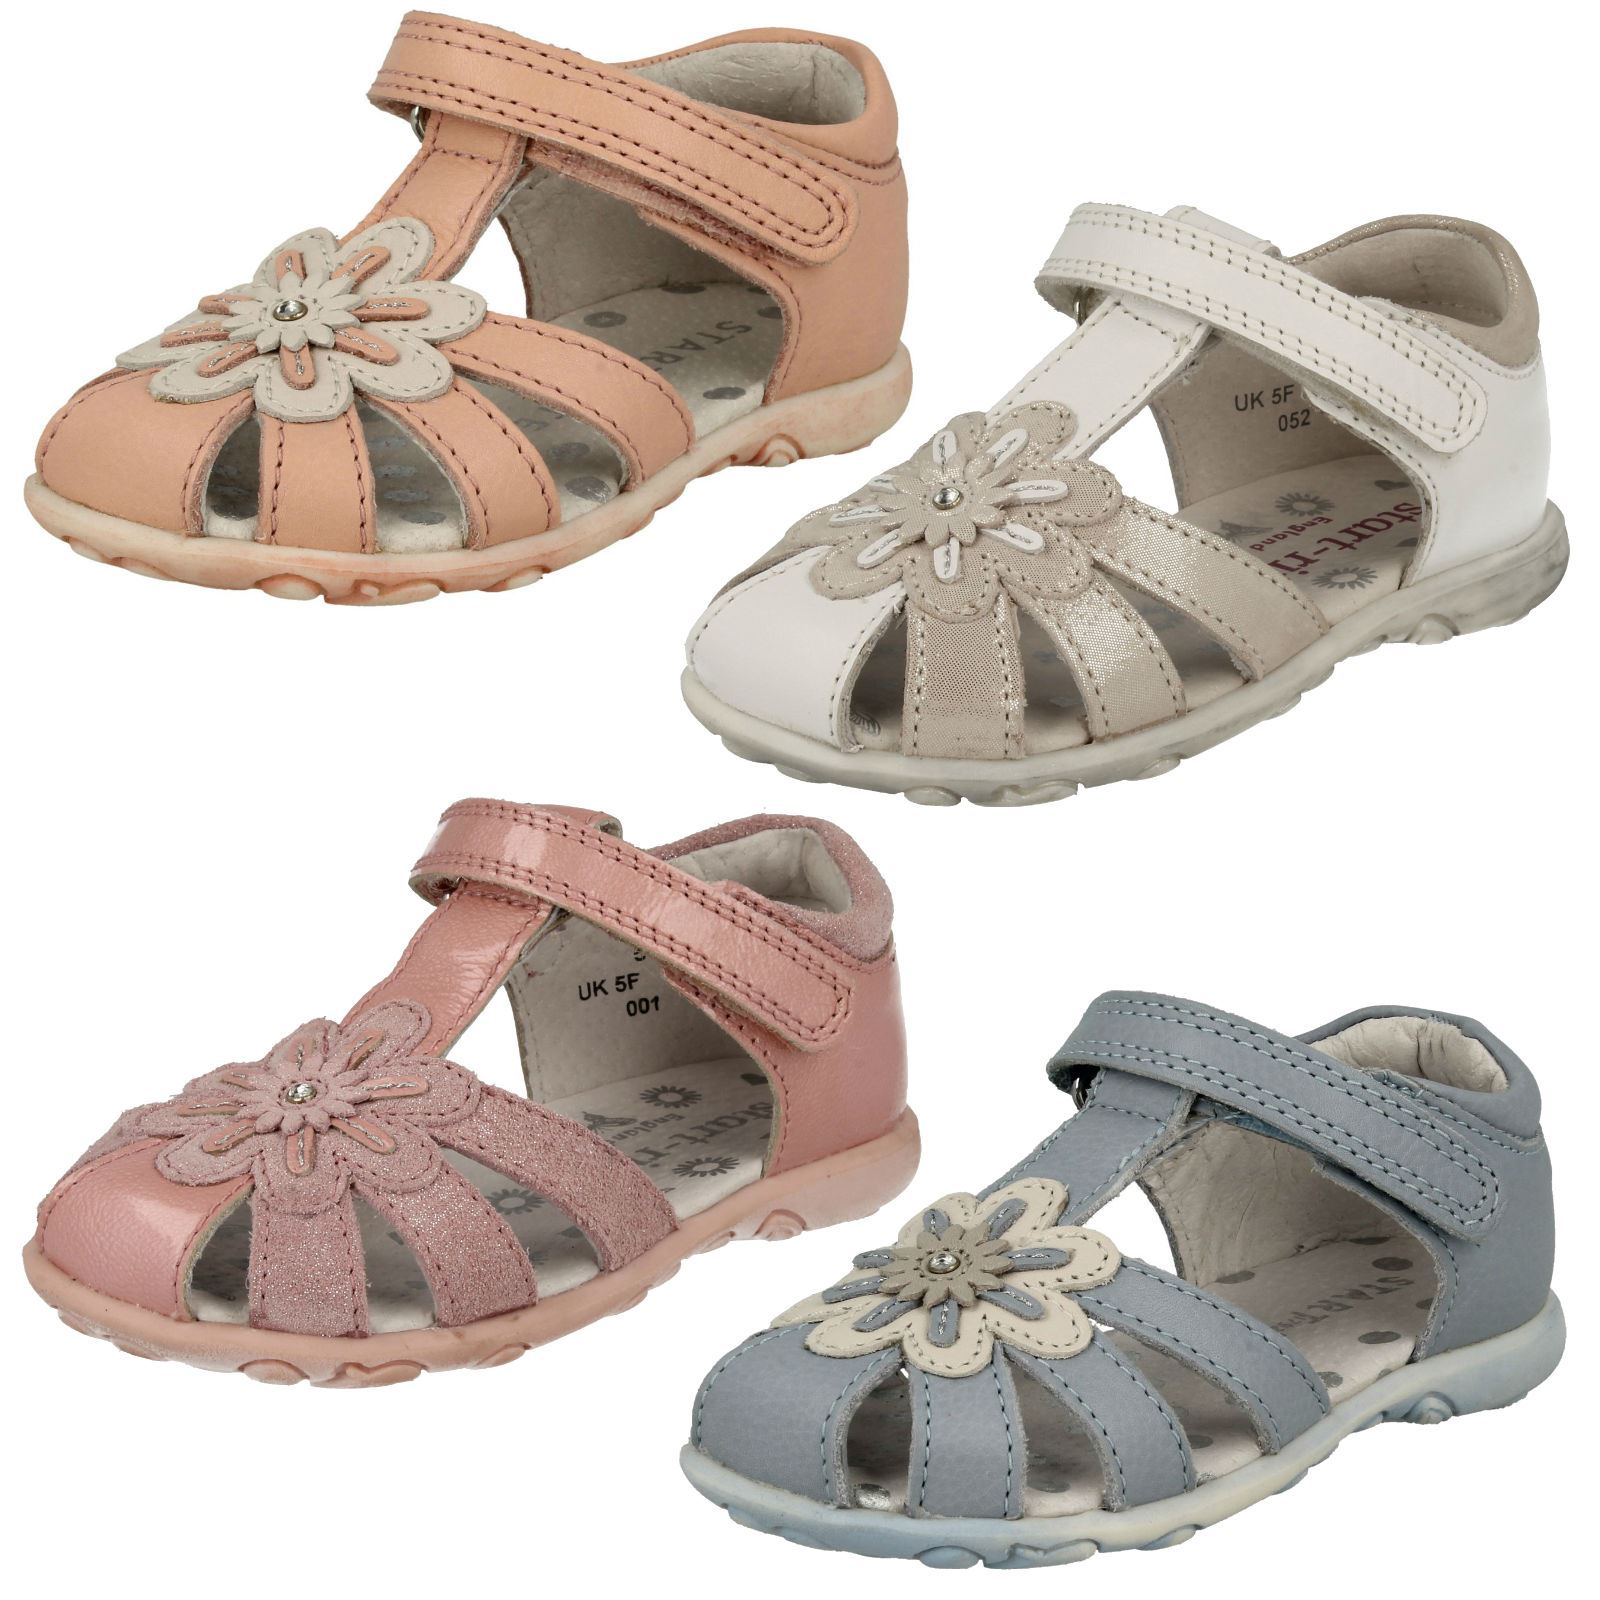 365f07a4810fb Details about Infant Girls Startrite Closed Toe Hook & Loop Leather Sandals  Primrose